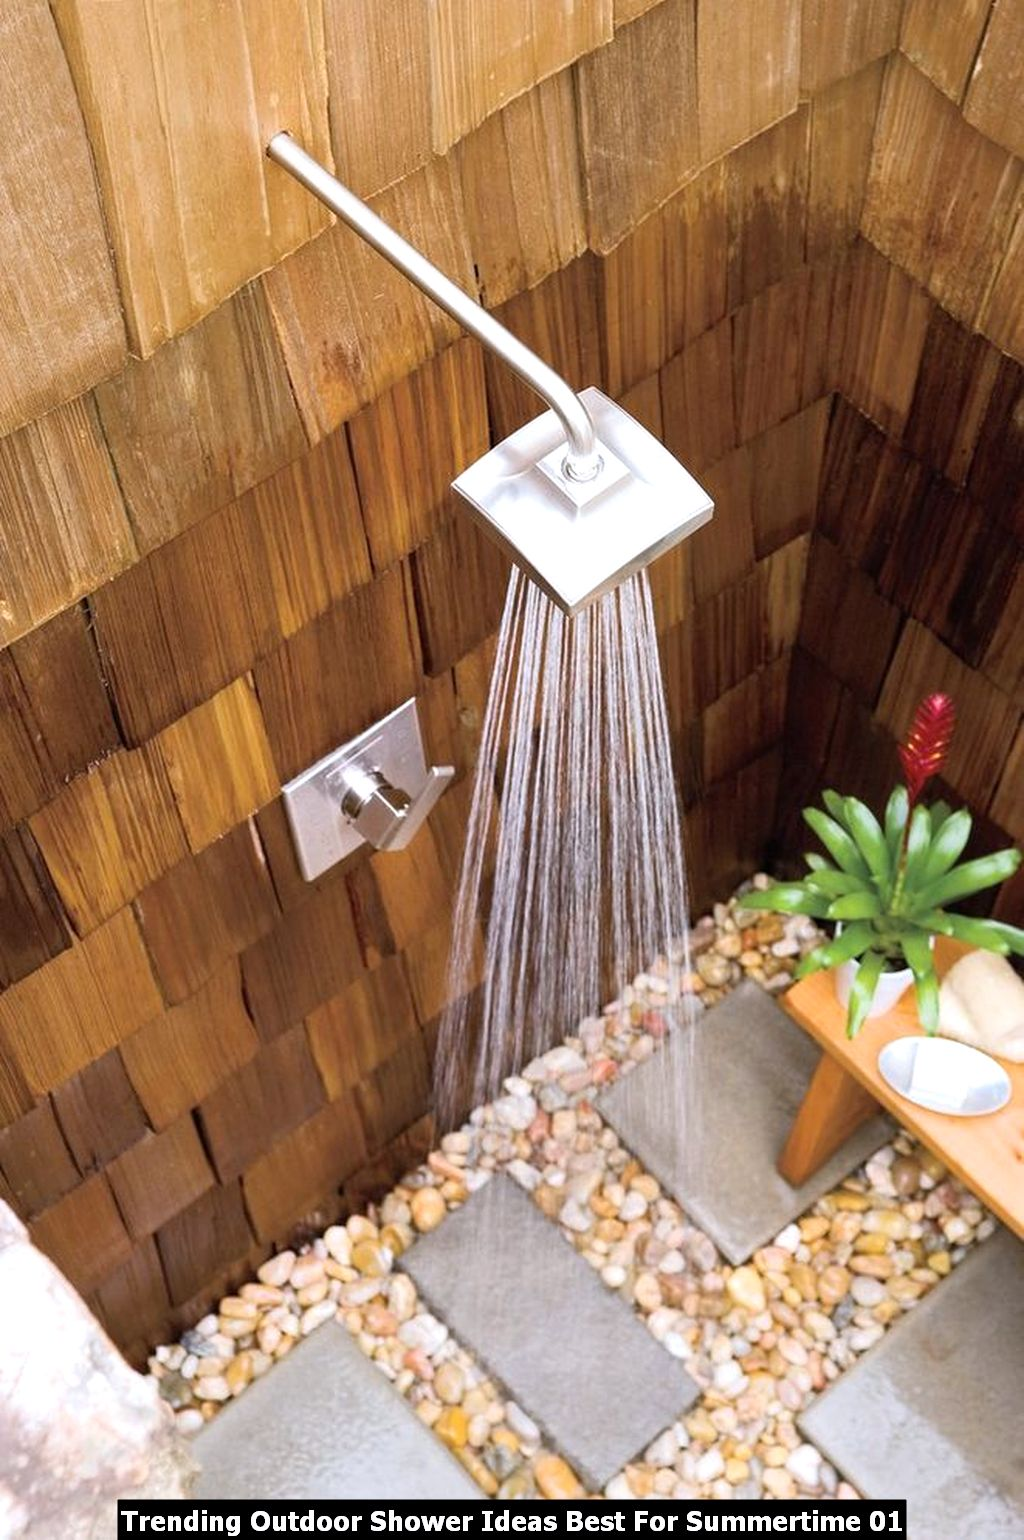 Trending Outdoor Shower Ideas Best For Summertime 01